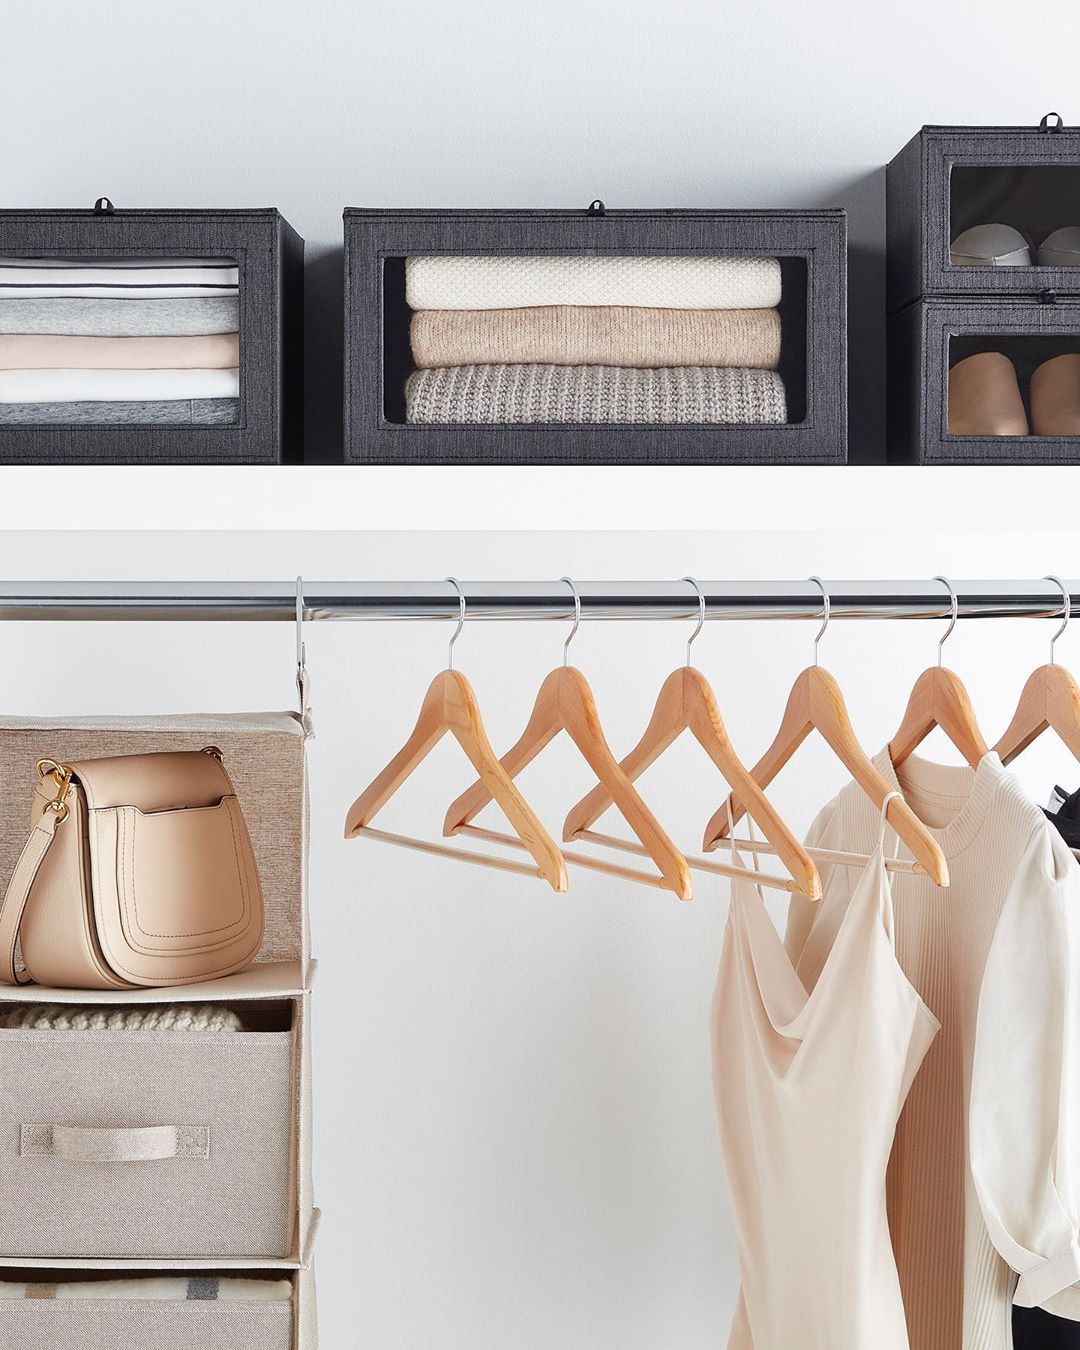 """The Container Store on Instagram: """"Make more space. Then make it your own. #MoreSpace"""""""